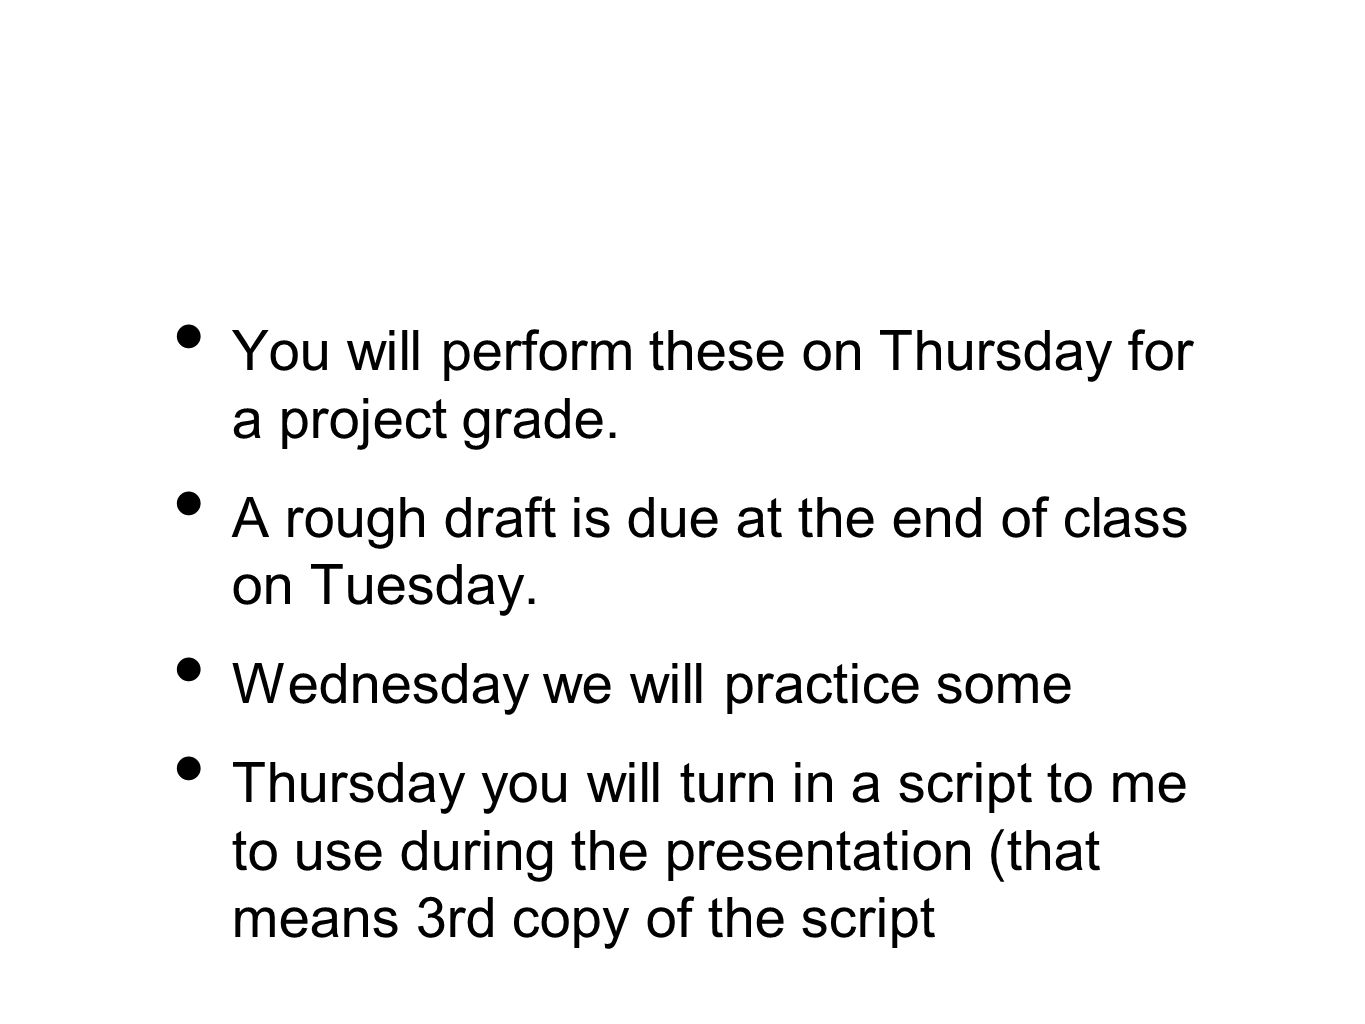 You will perform these on Thursday for a project grade.